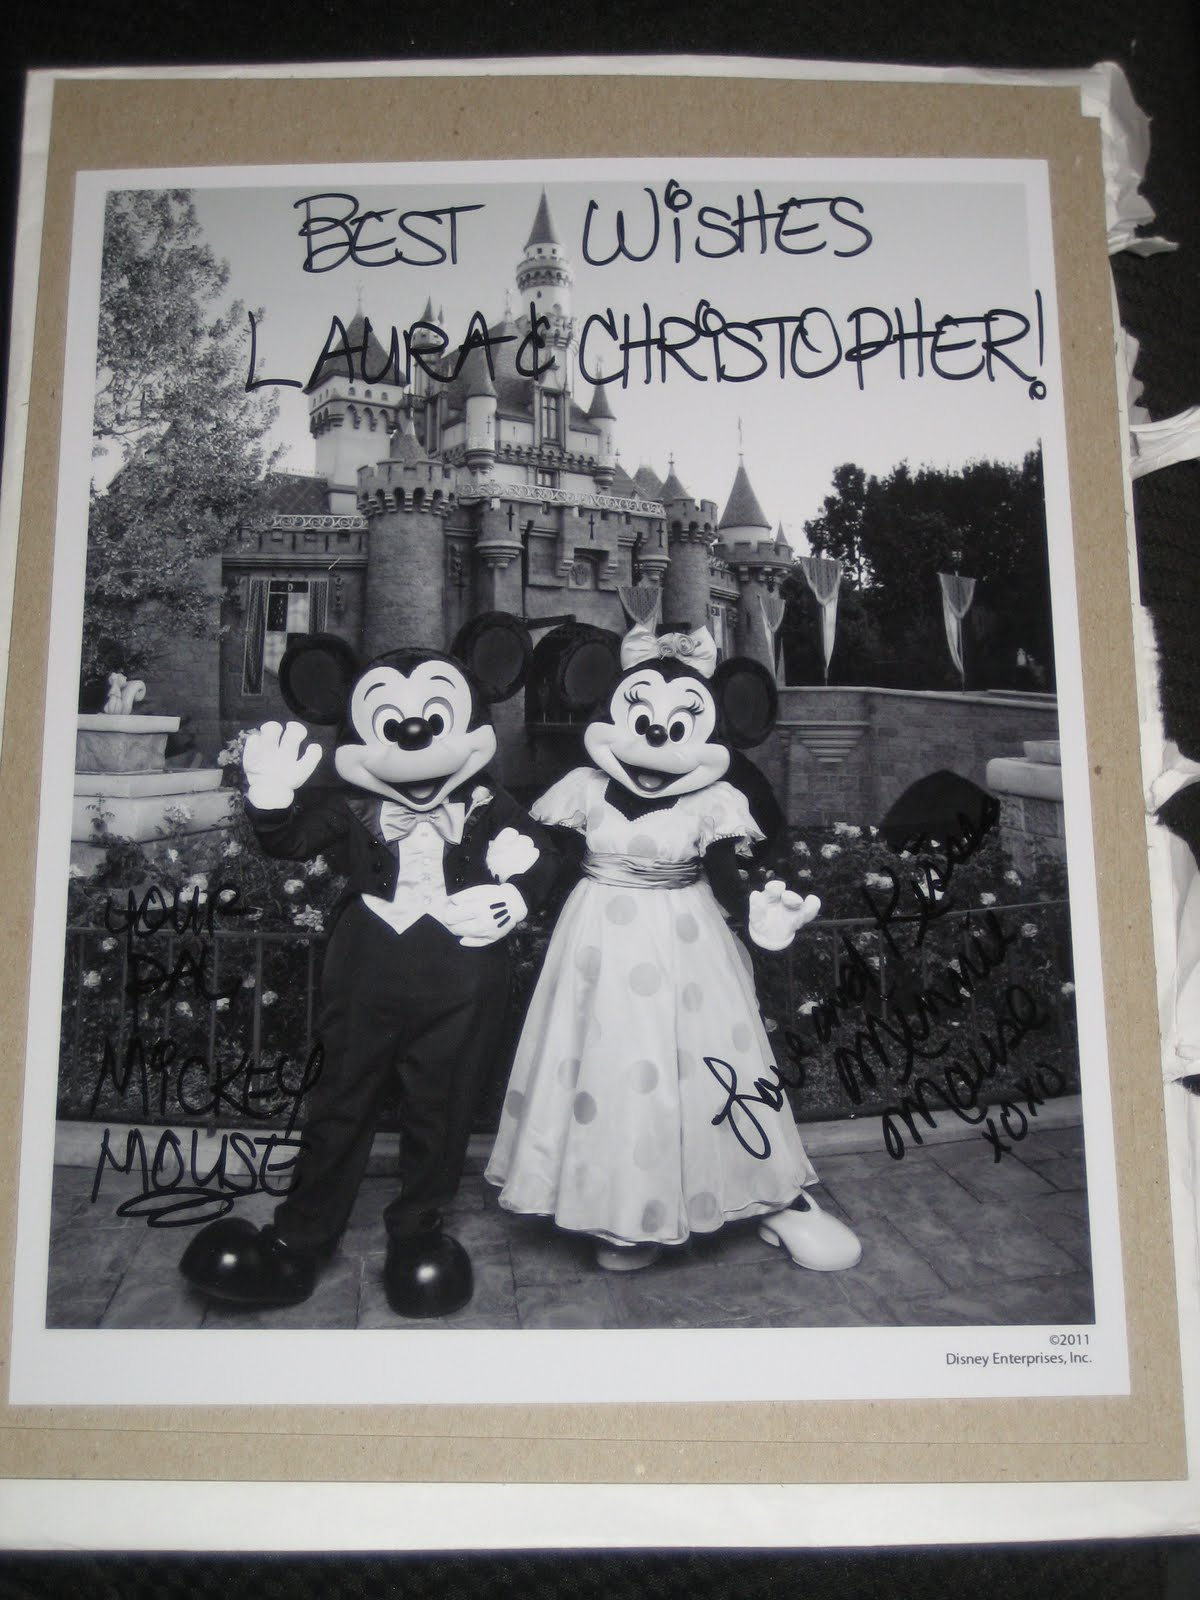 Saying i do mickey and minnie rsvp best wishes laura and christopher your pal mickey mouse and love and kisses minnie mouse junglespirit Gallery